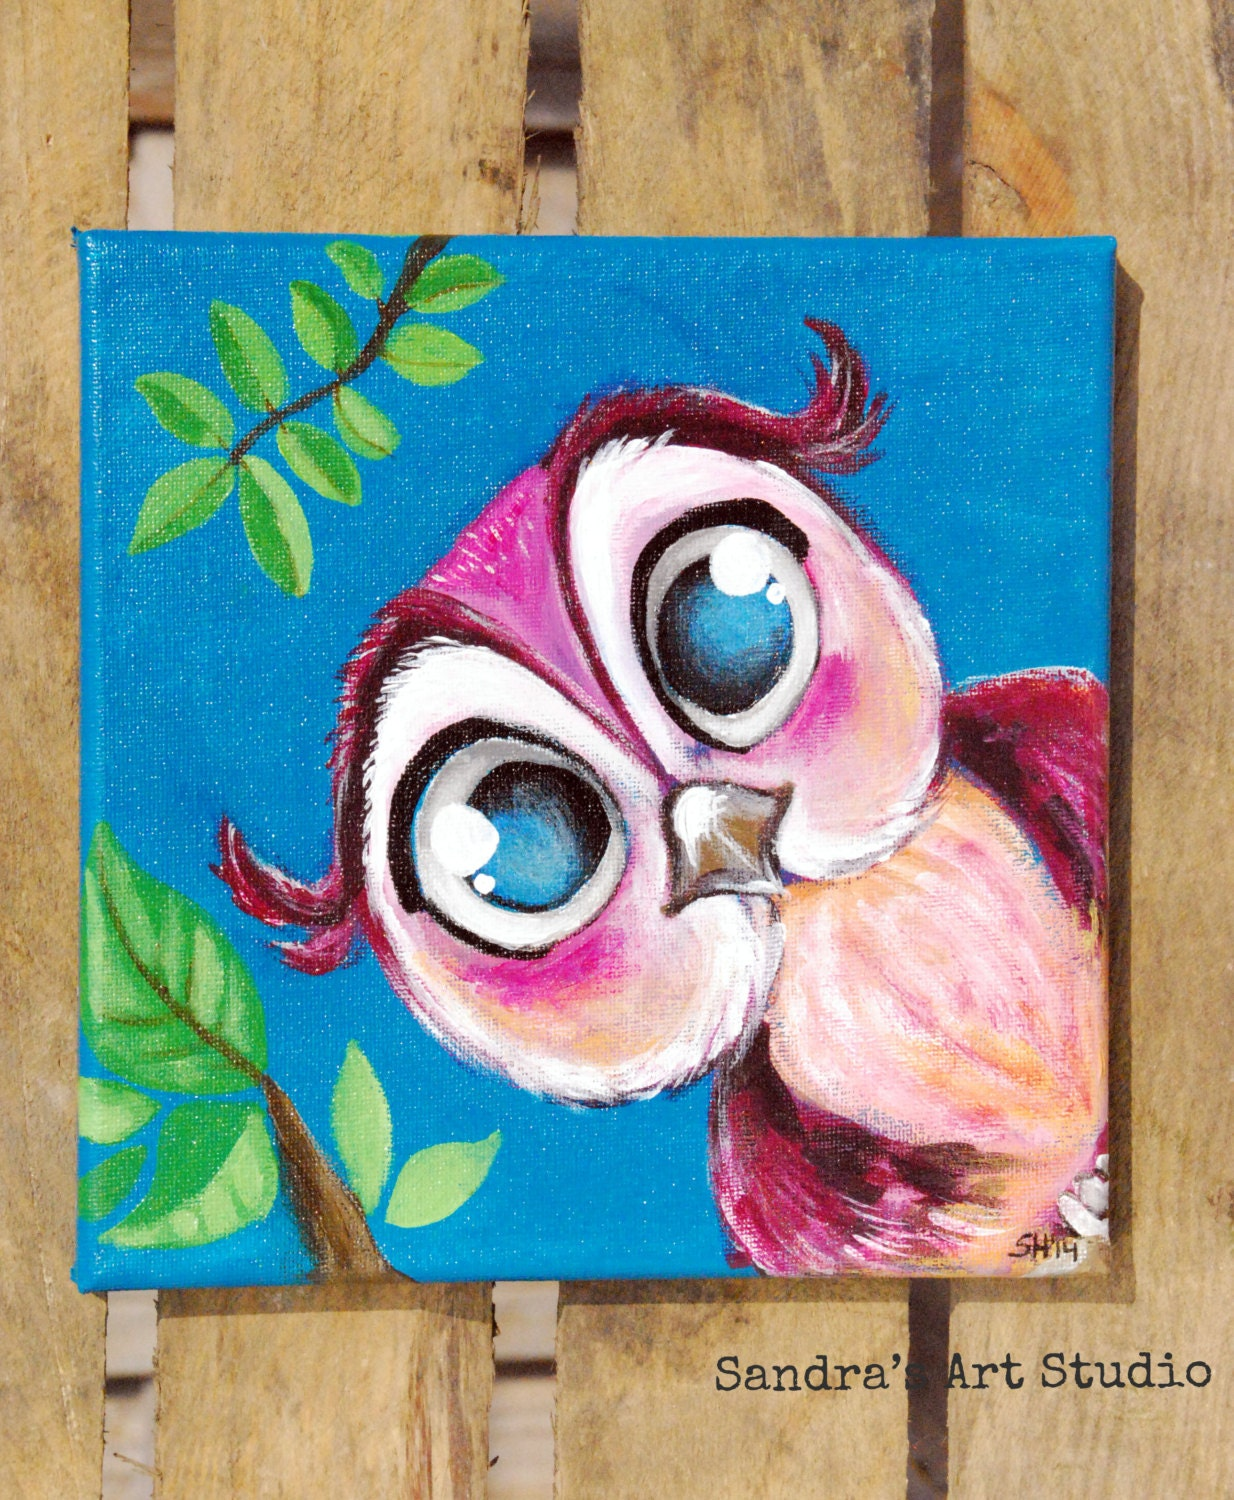 Kids Art CUTE Litte OWL Acrylic Painting On Canvas 78x78 Inch For Nursery And Bedroom 304